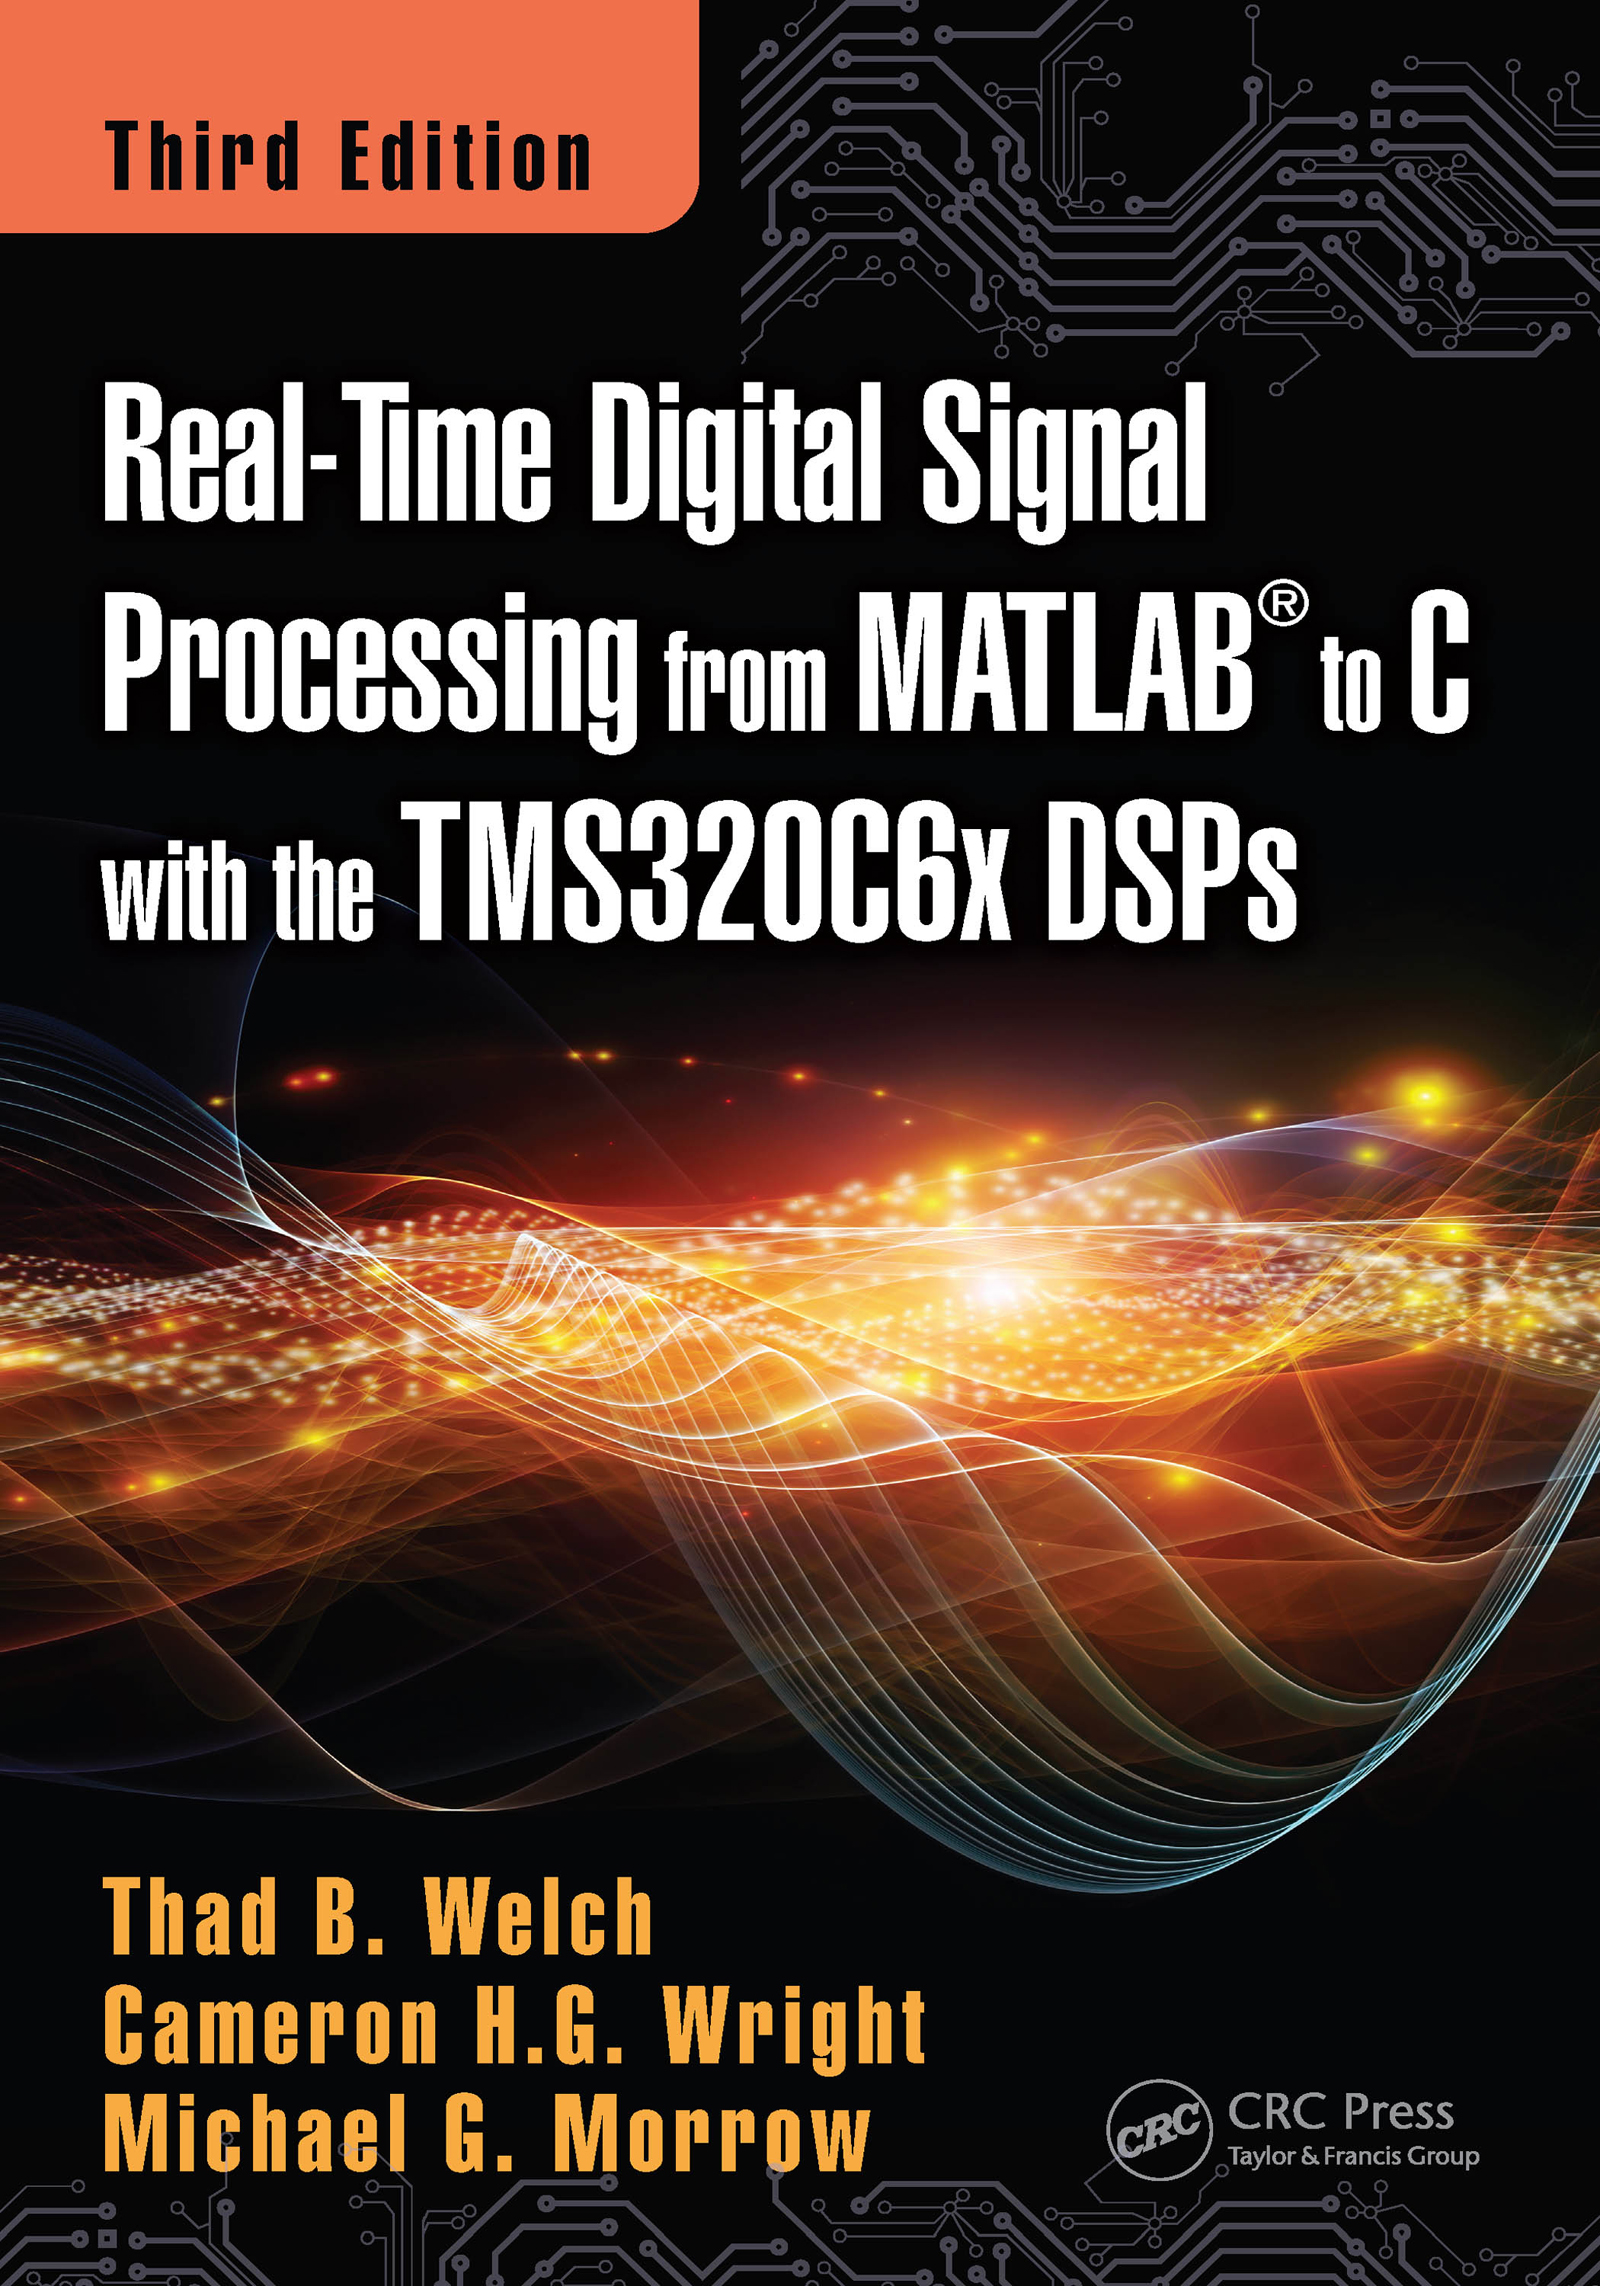 Real-Time Digital Signal Processing from MATLAB to C with